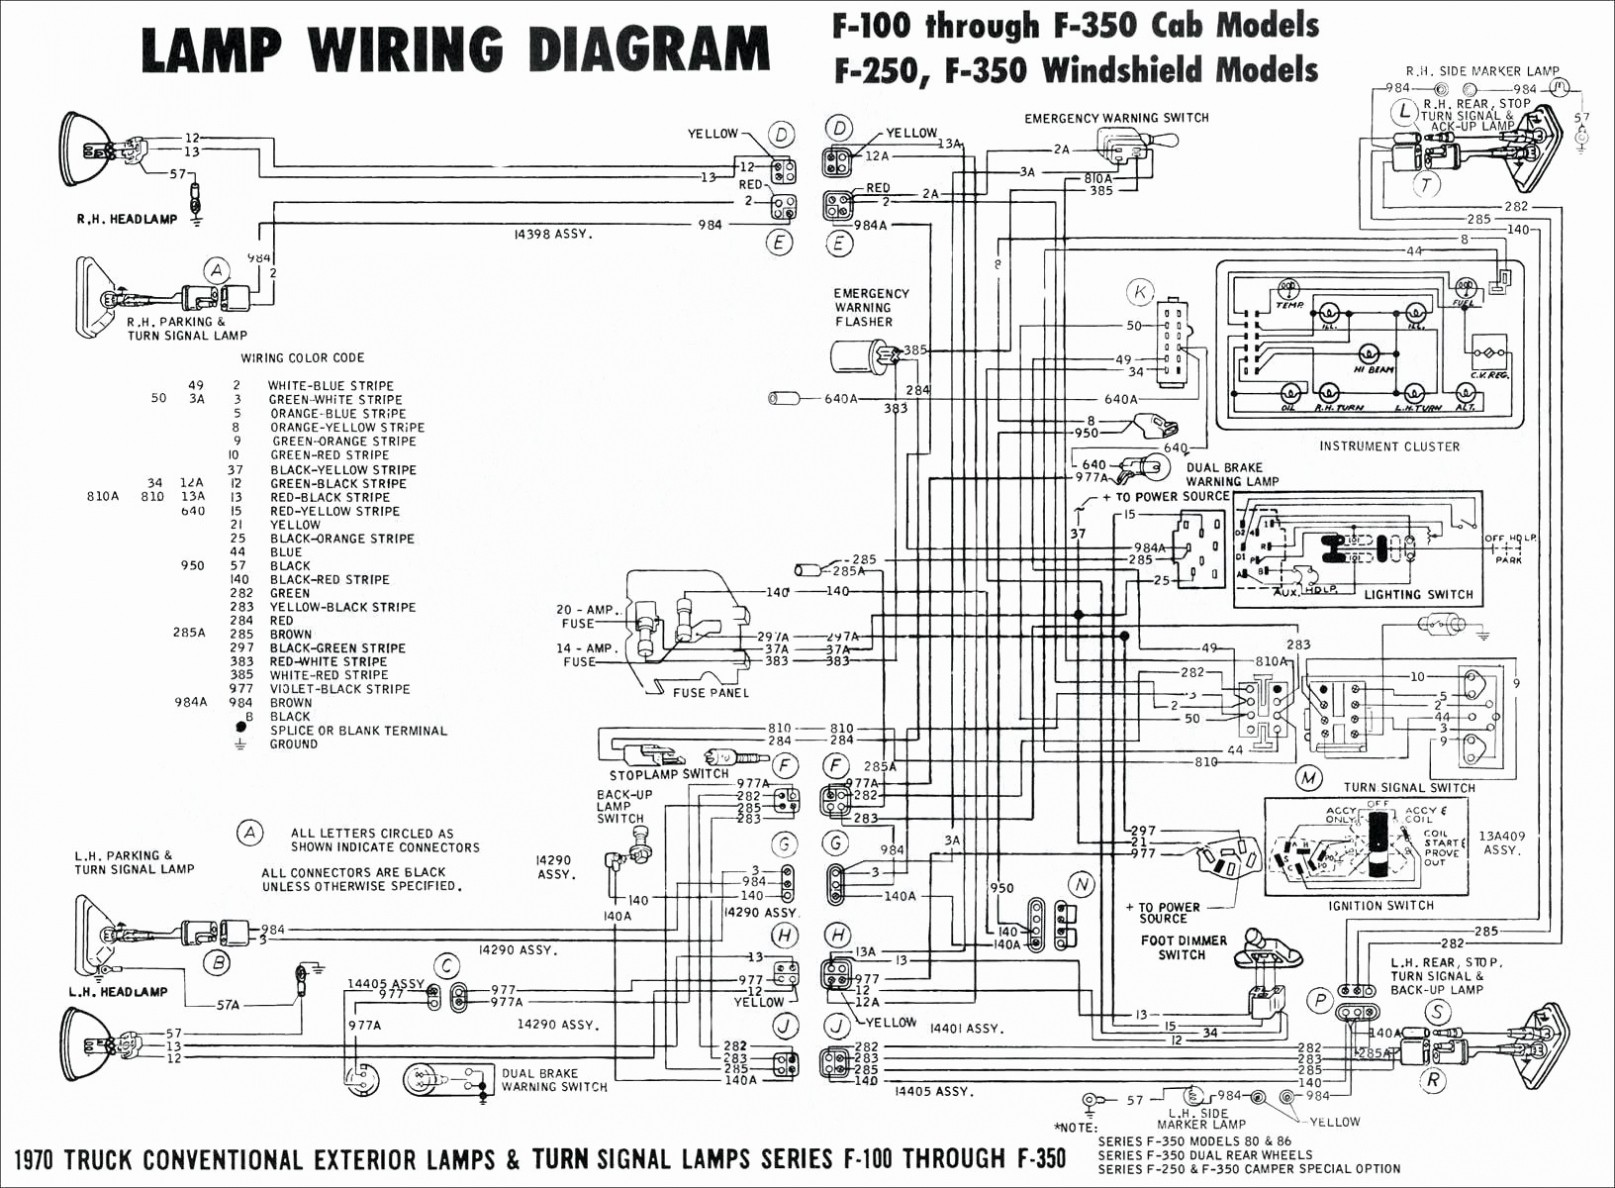 wiring diagram for 1030 case wiring diagram schematics controller wiring  diagram 1030 case tractor wiring diagram